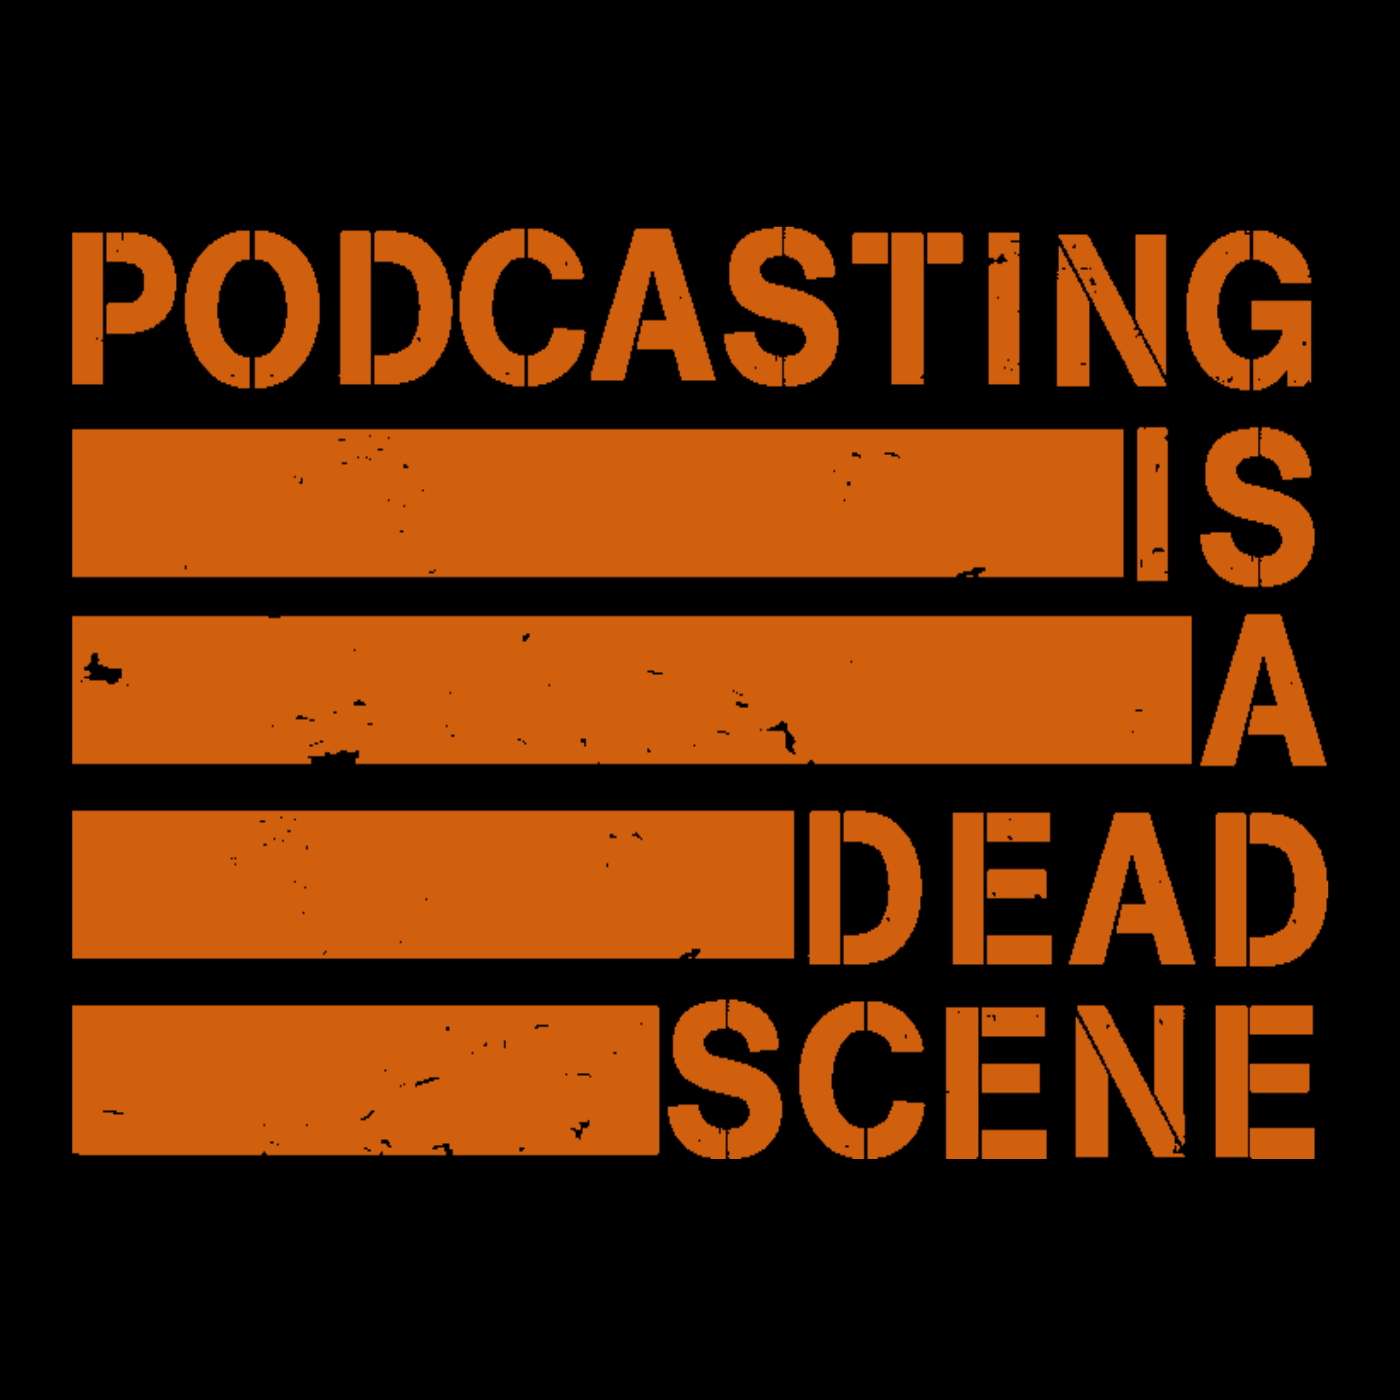 Episode 1: The Podcast is Dead. Long Live Dead Scenecast.